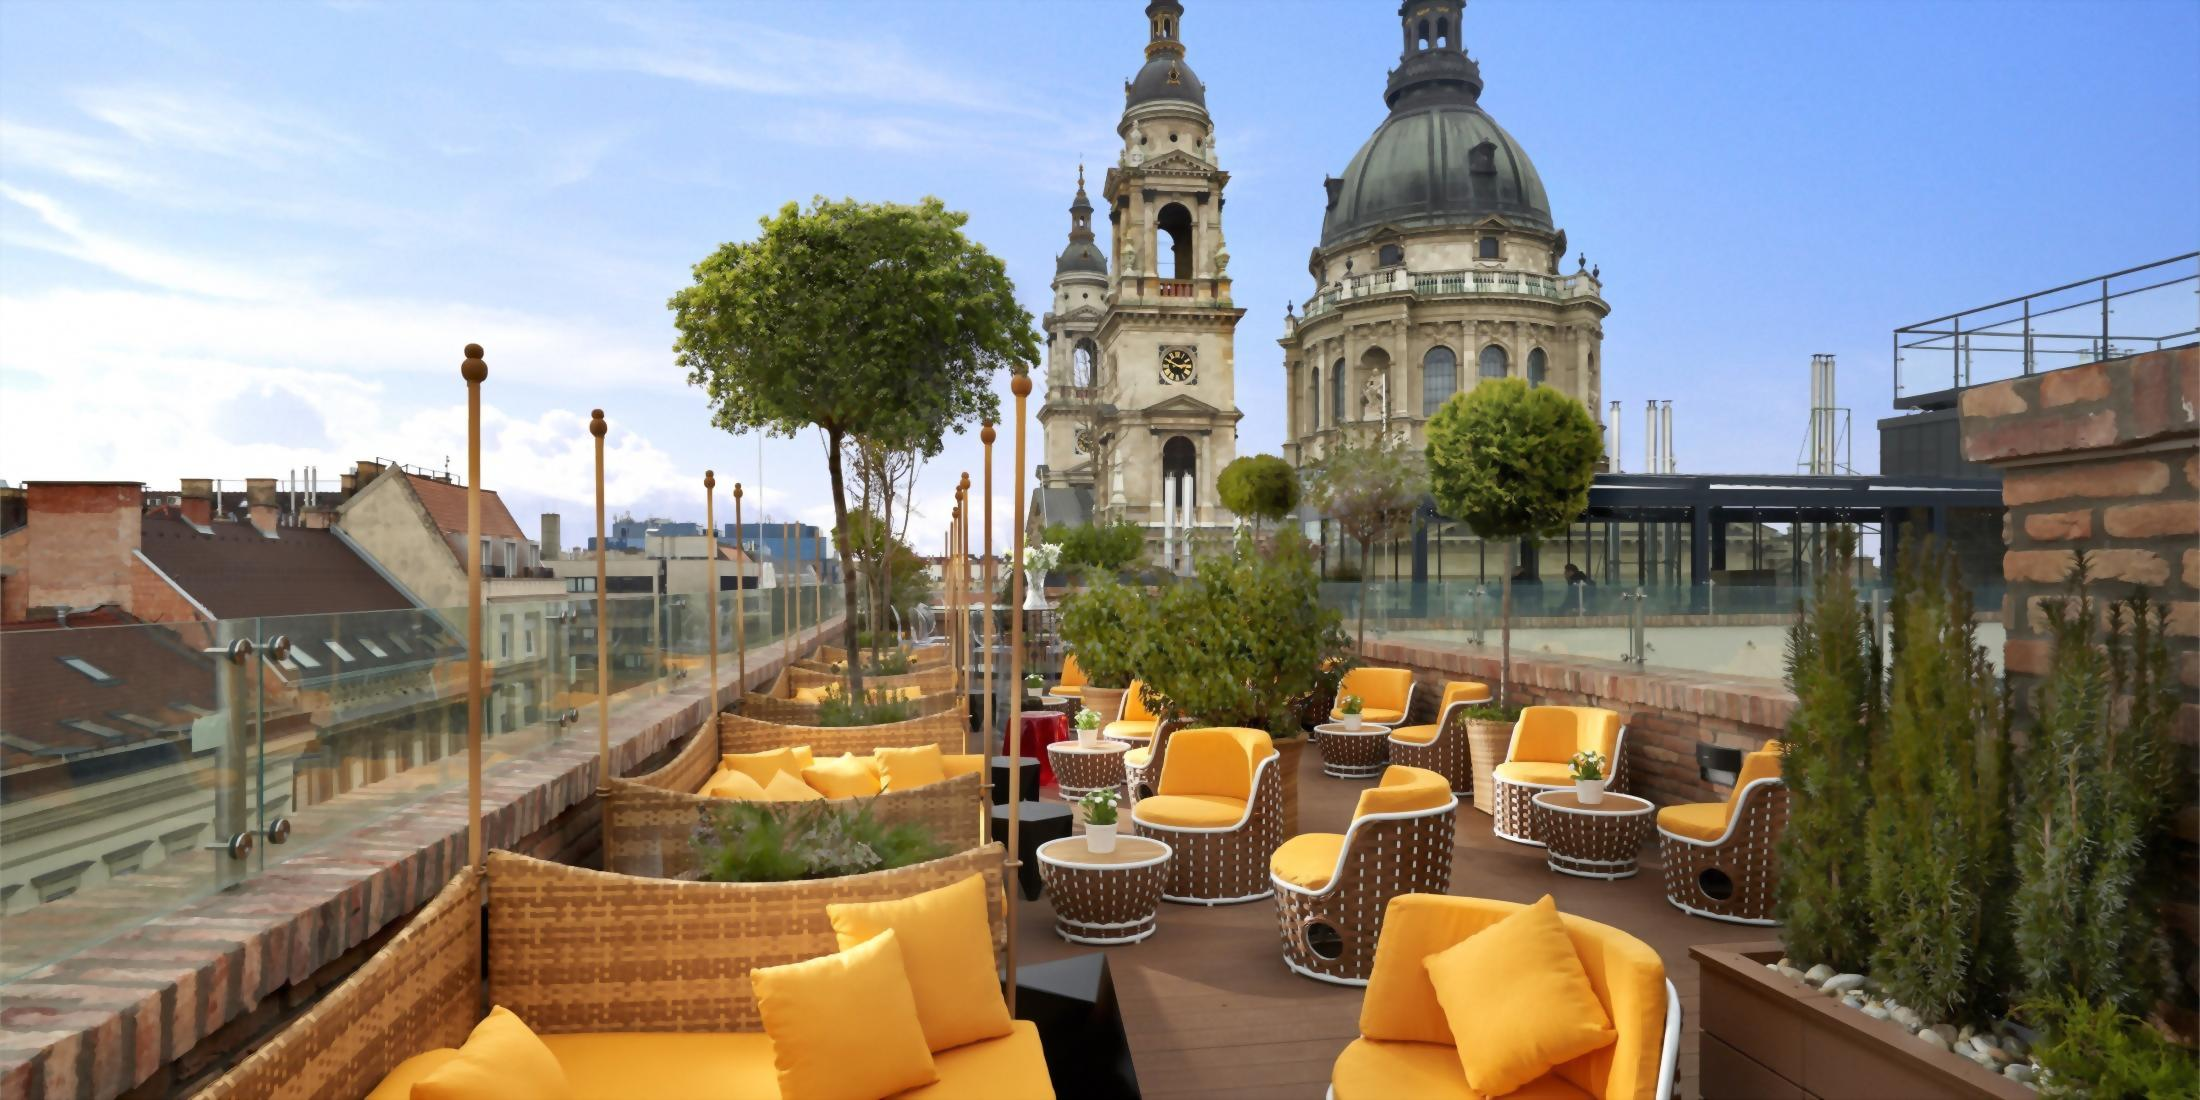 Located in the historic city center, Aria Hotel Budapest is situated beside the famous St. Stephen's Basilica.